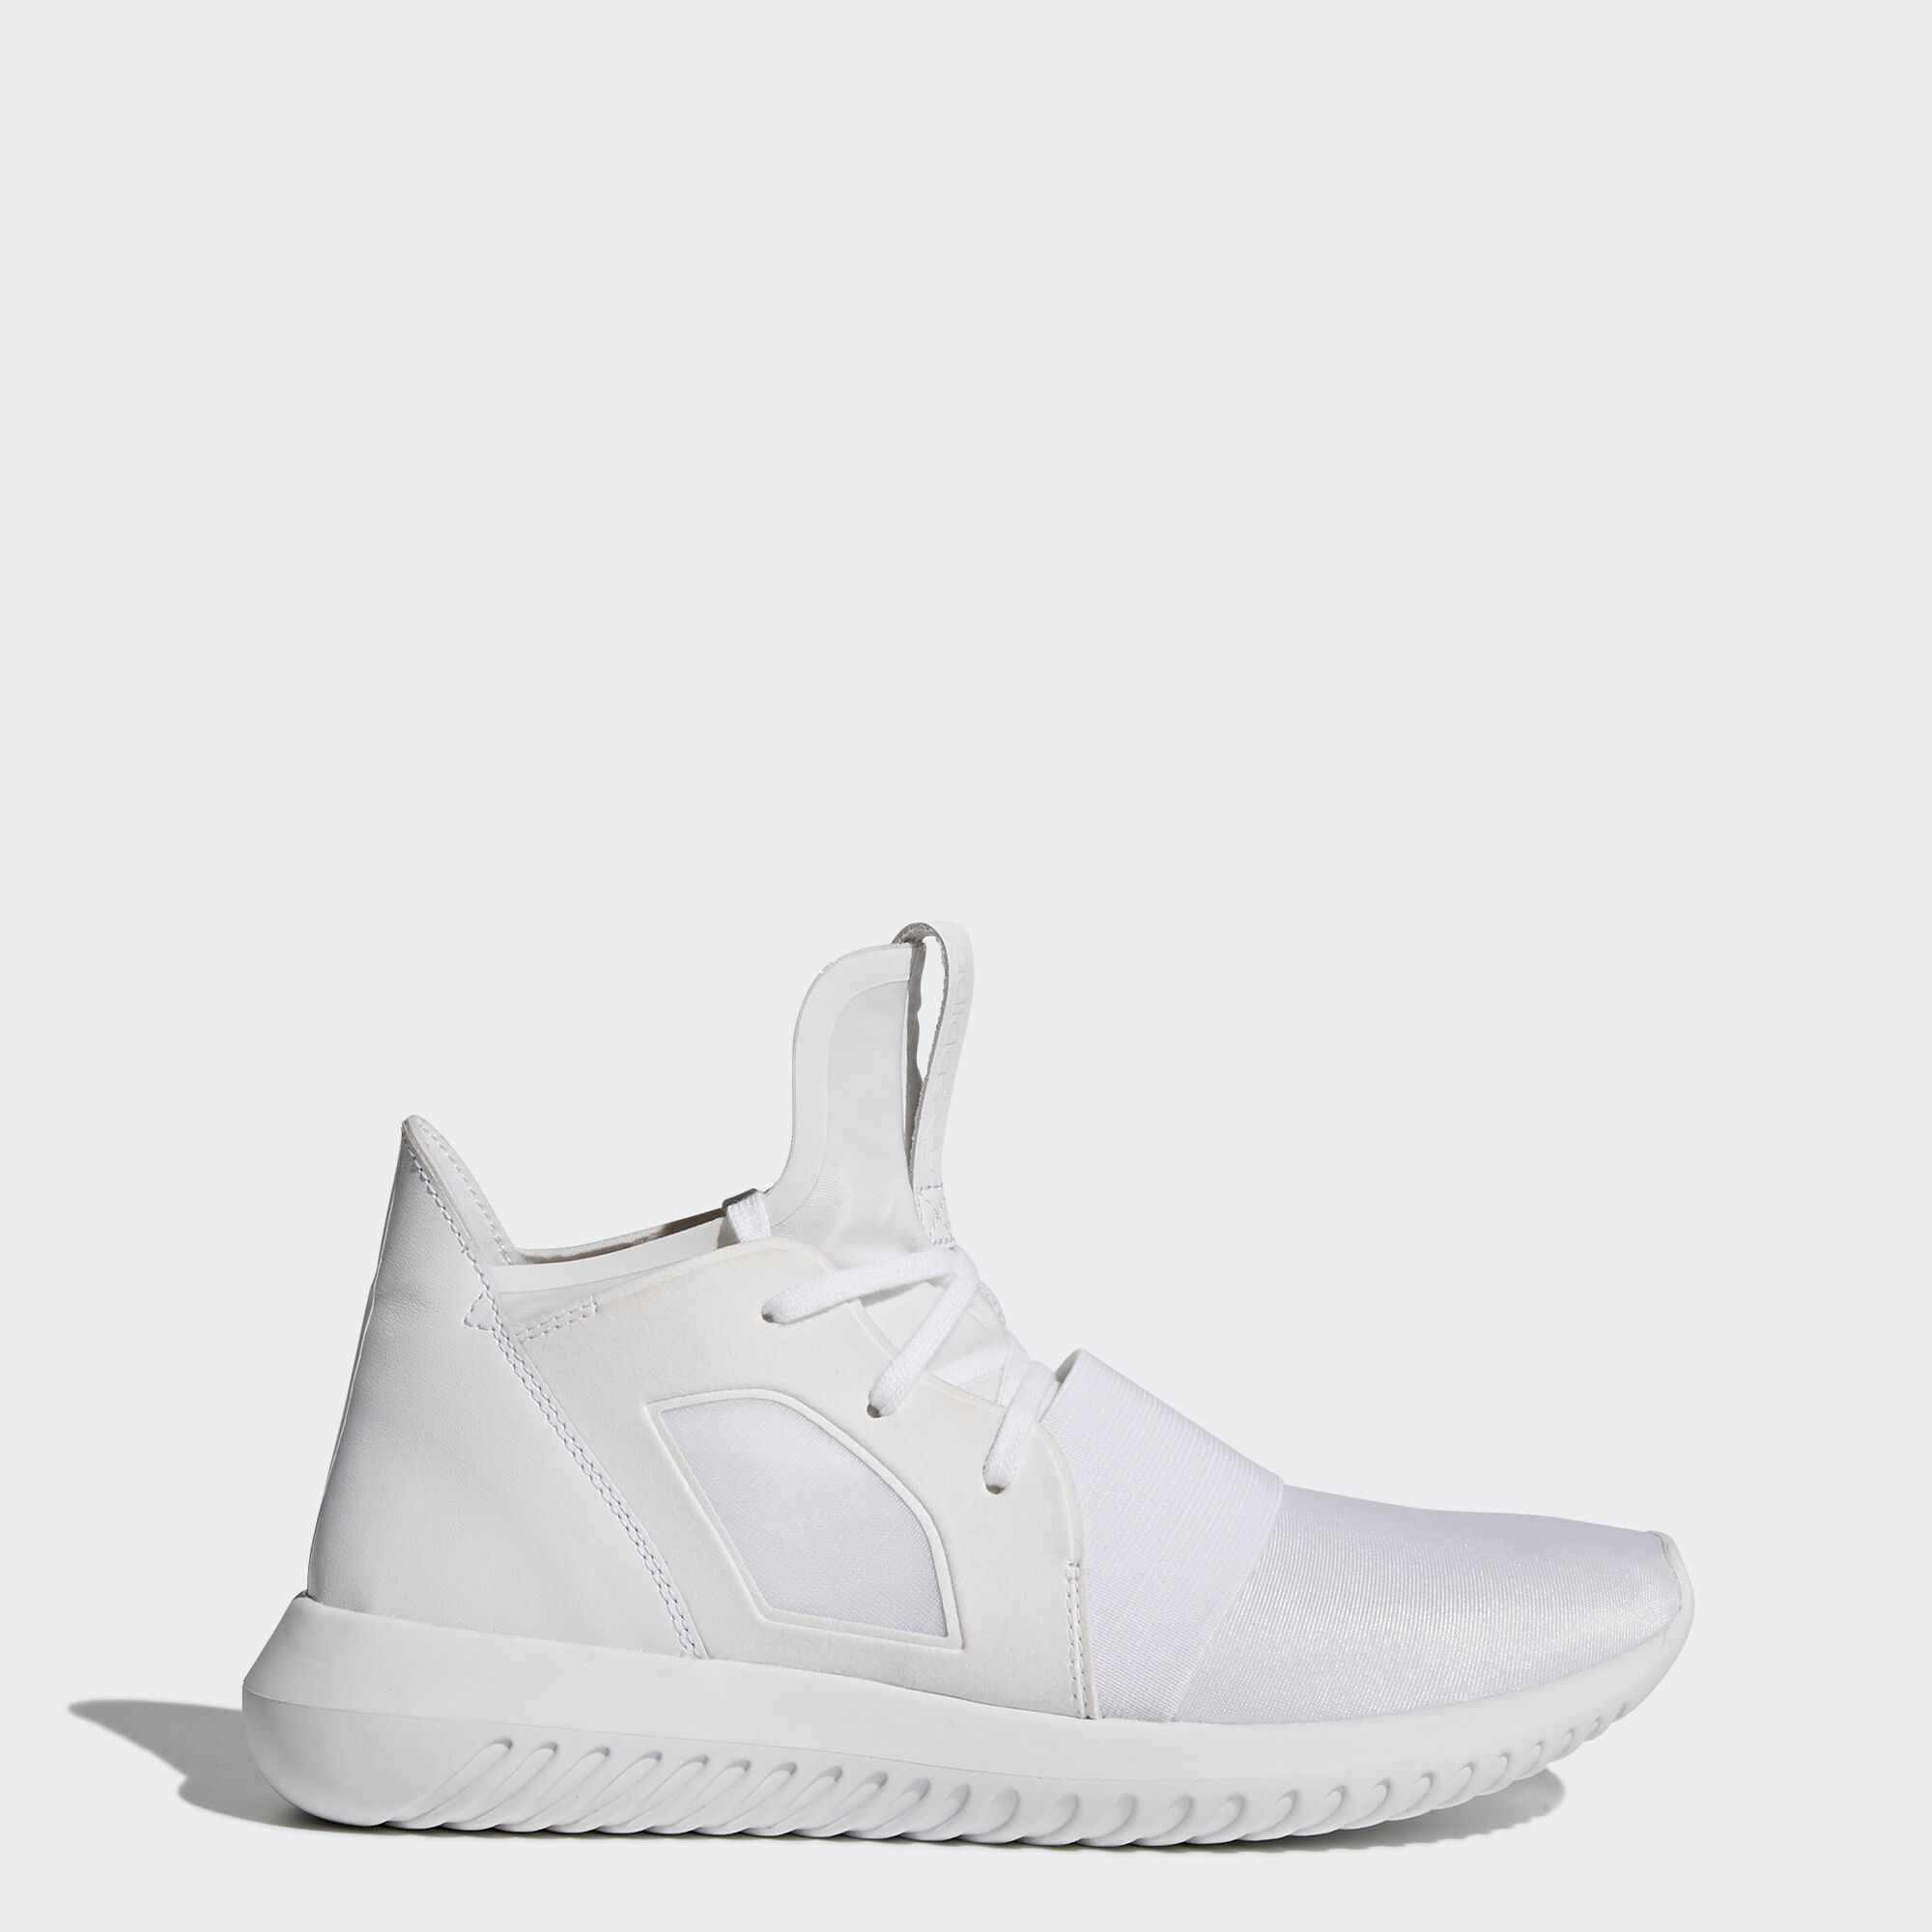 Adidas Tubular Ladies